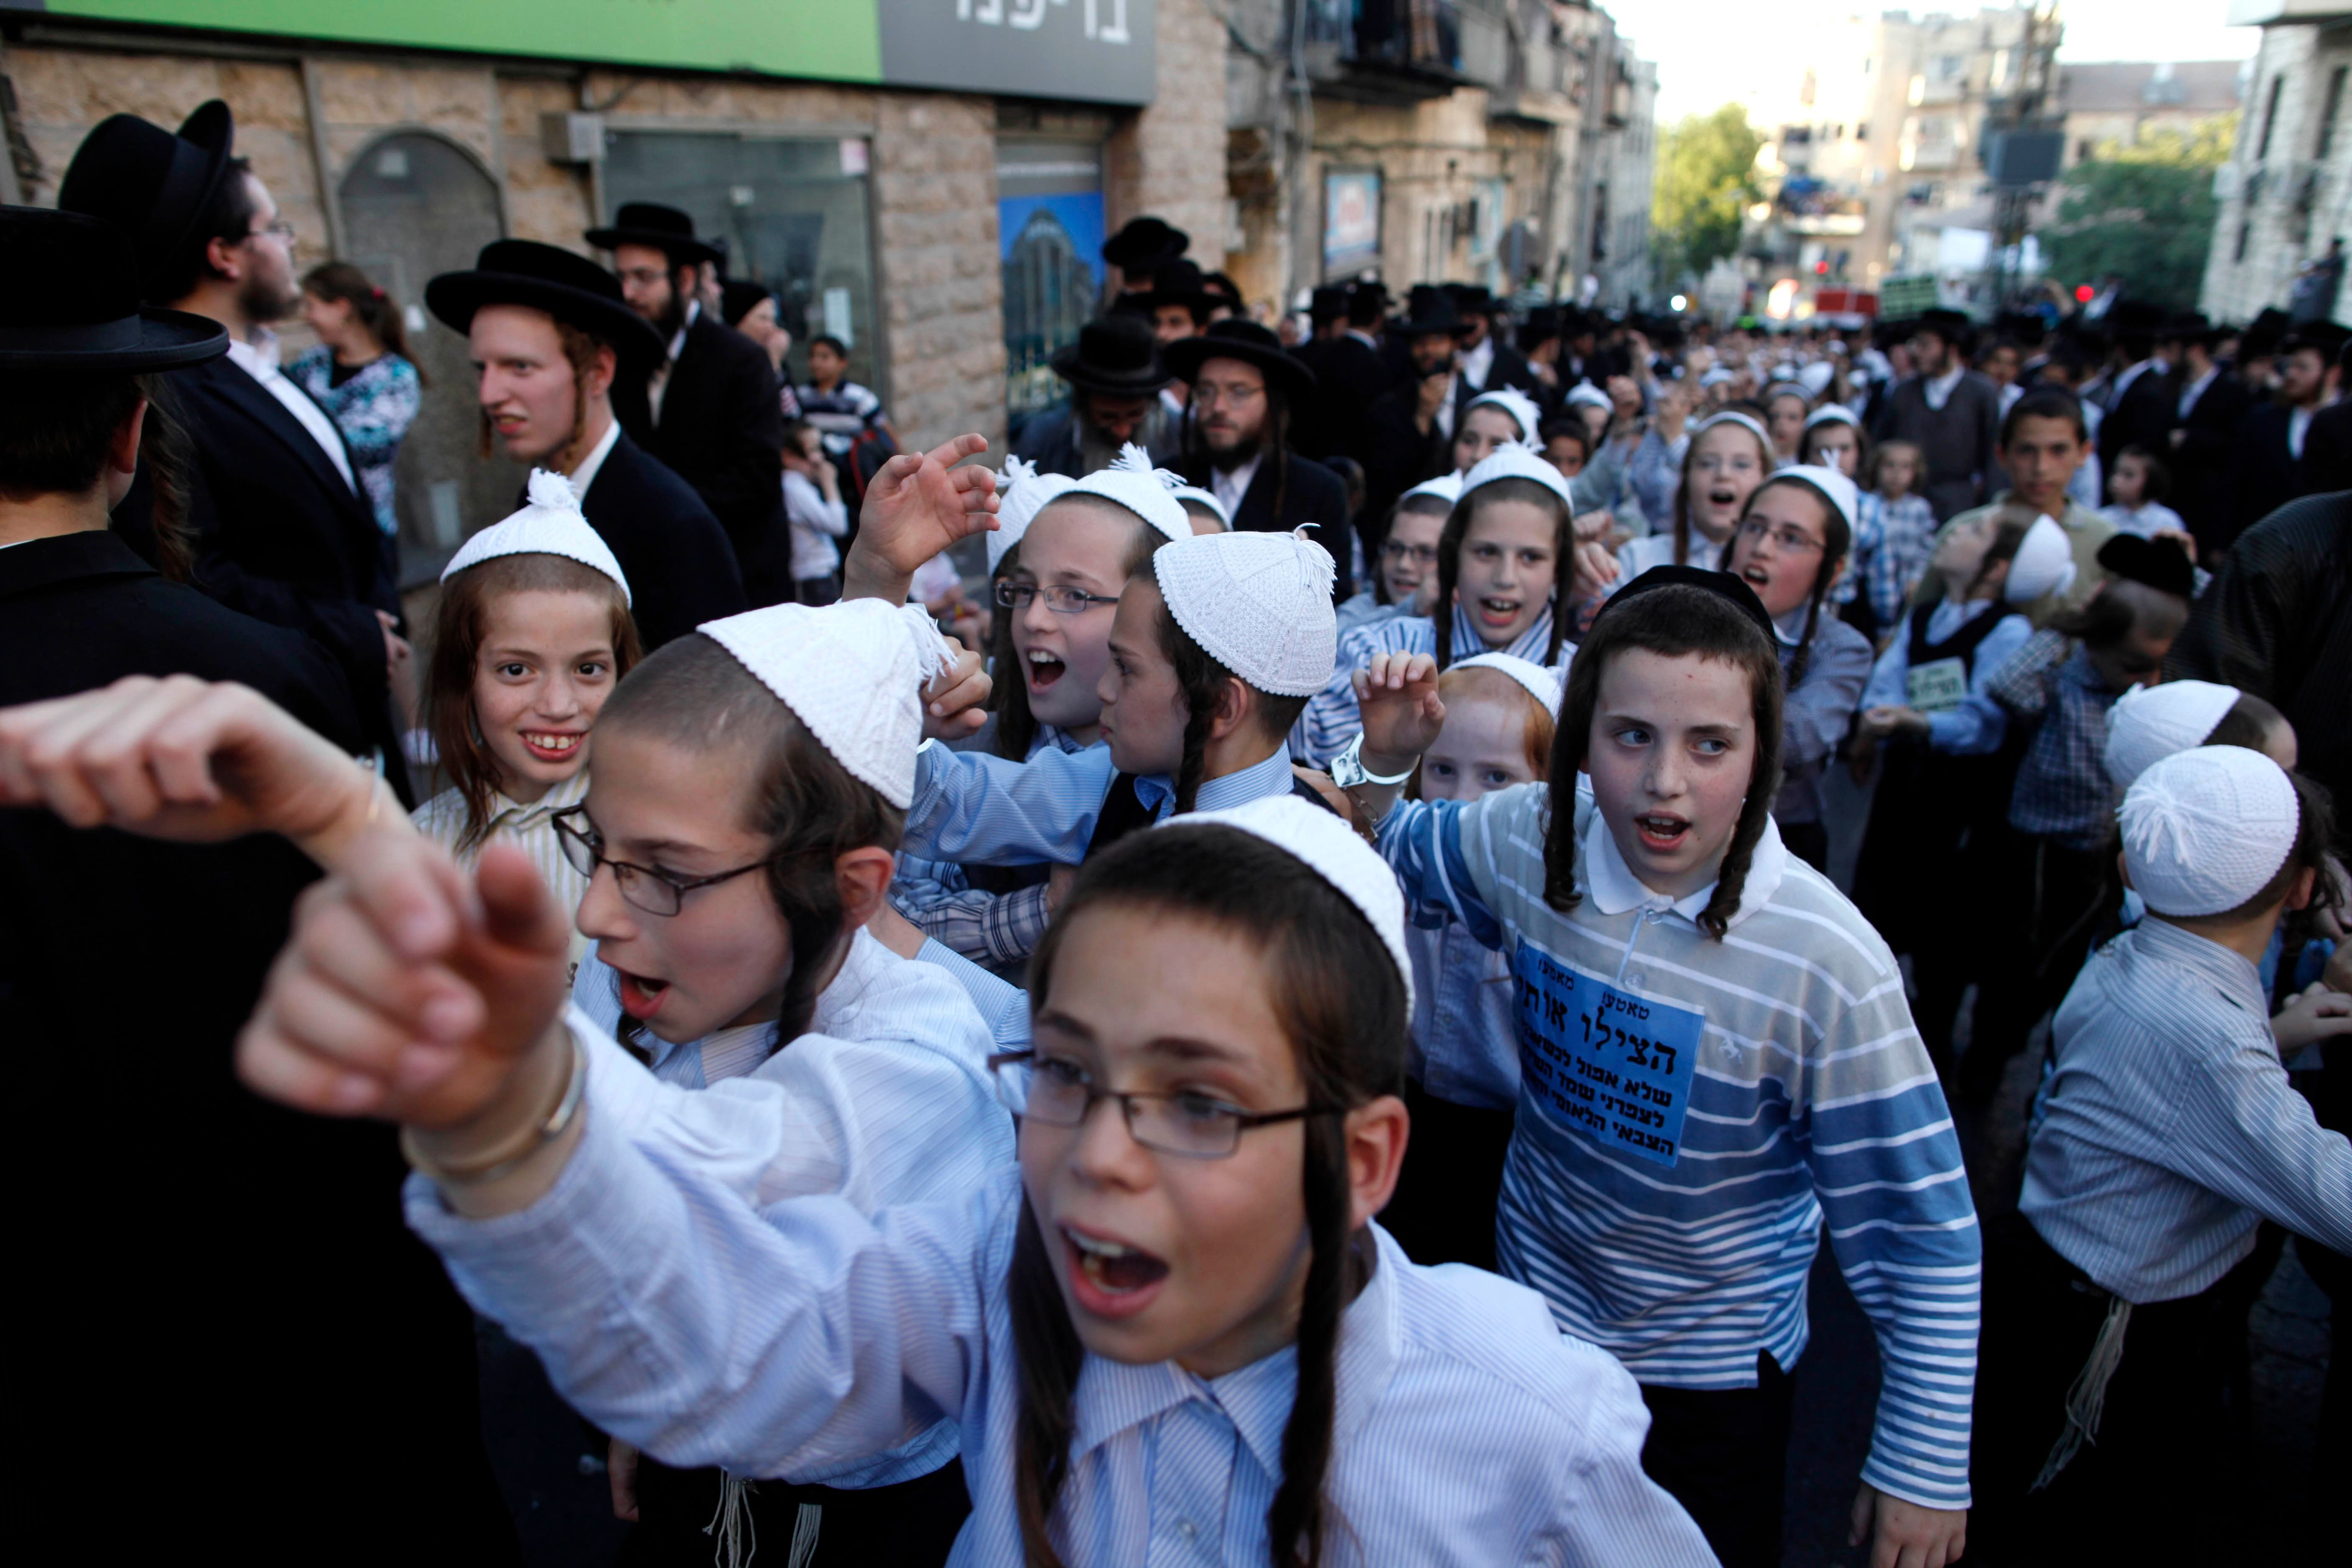 Fifteen ultra-Orthodox Jewish schools haven't let New York City officials investigate allegations that they don't provide enough secular education, according to a letter Wednesday from the city schools chief.